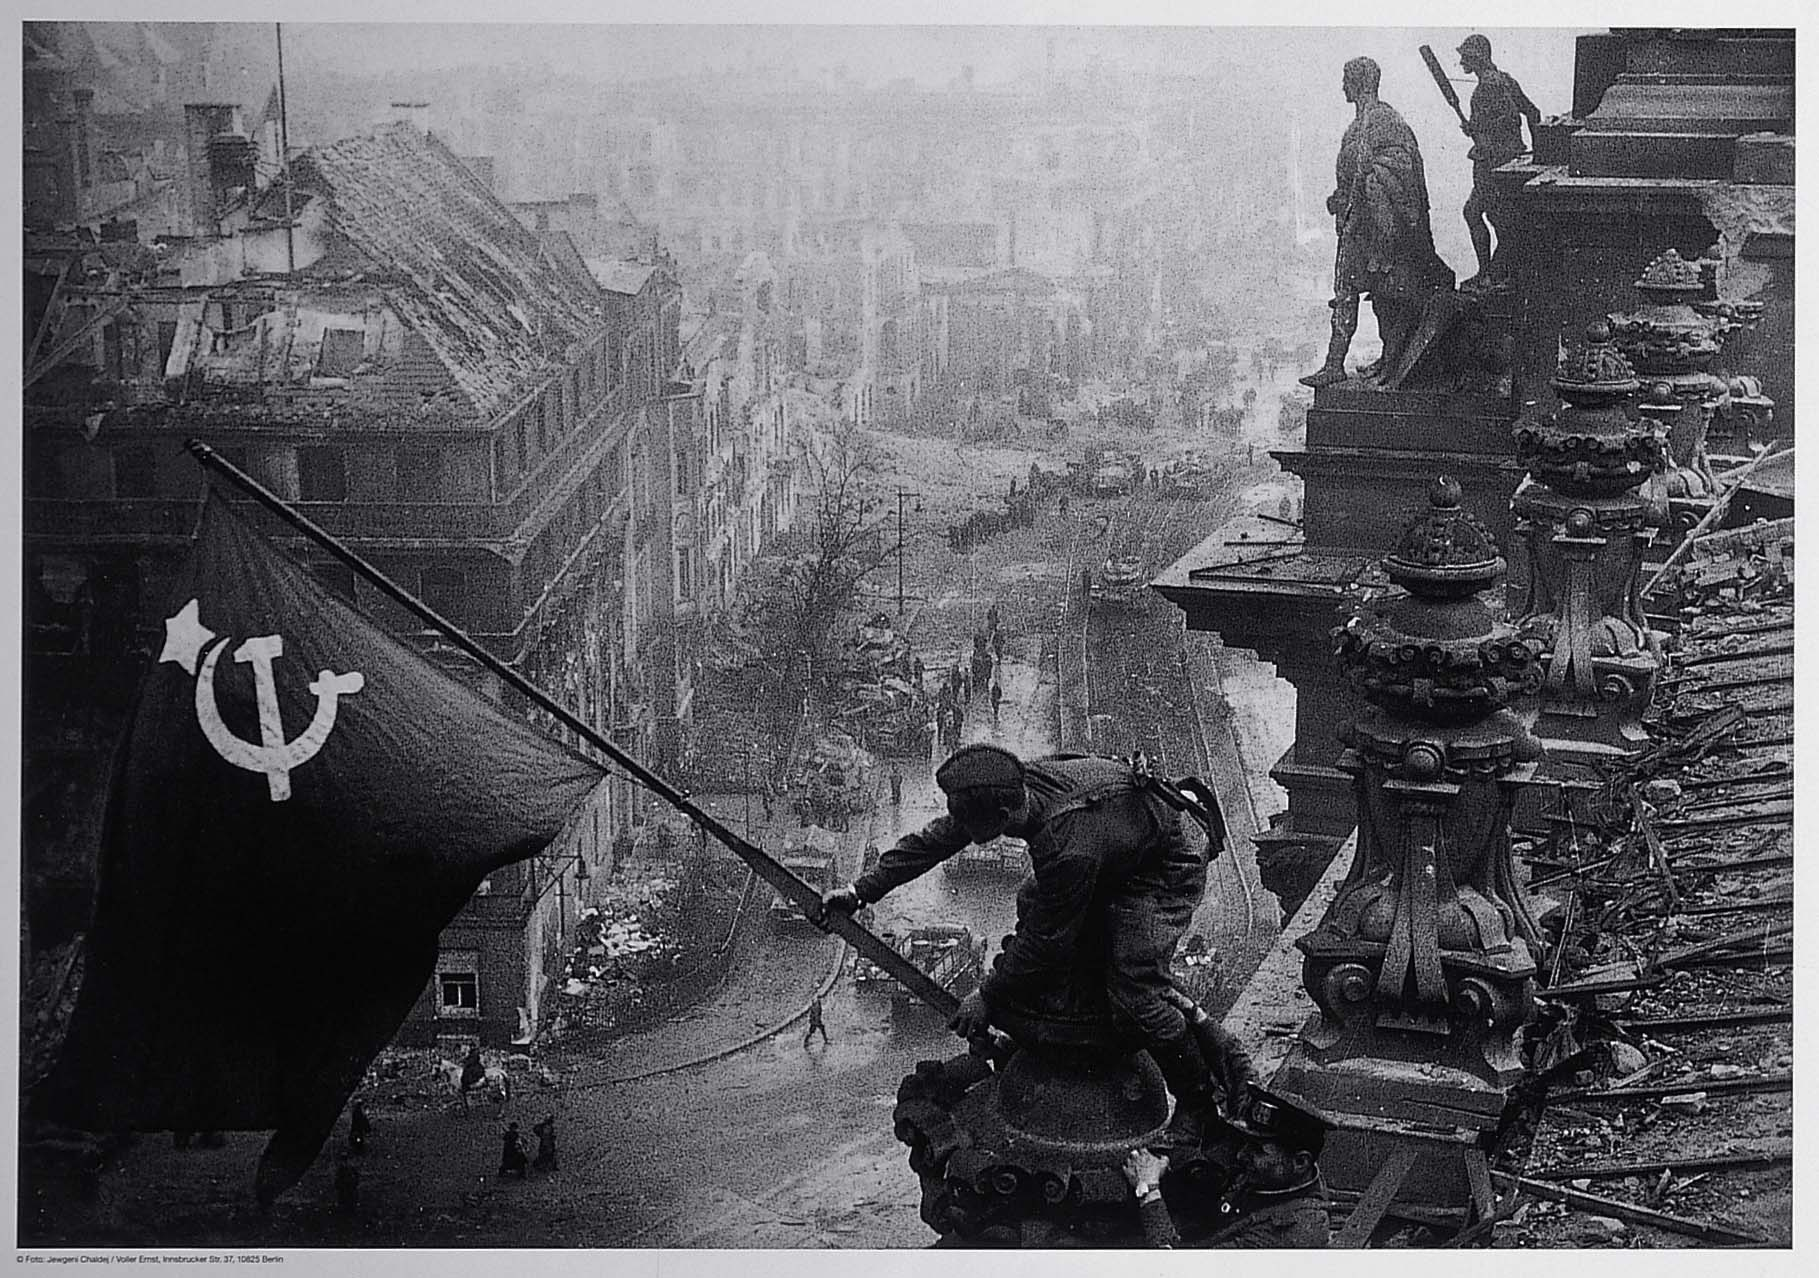 a photo of a soldier reaching over the ruined colonnade of a shattered building in Berlin to raise a red flag above streets with tanks and soldiers visible amidst the debris and burnt out buildings